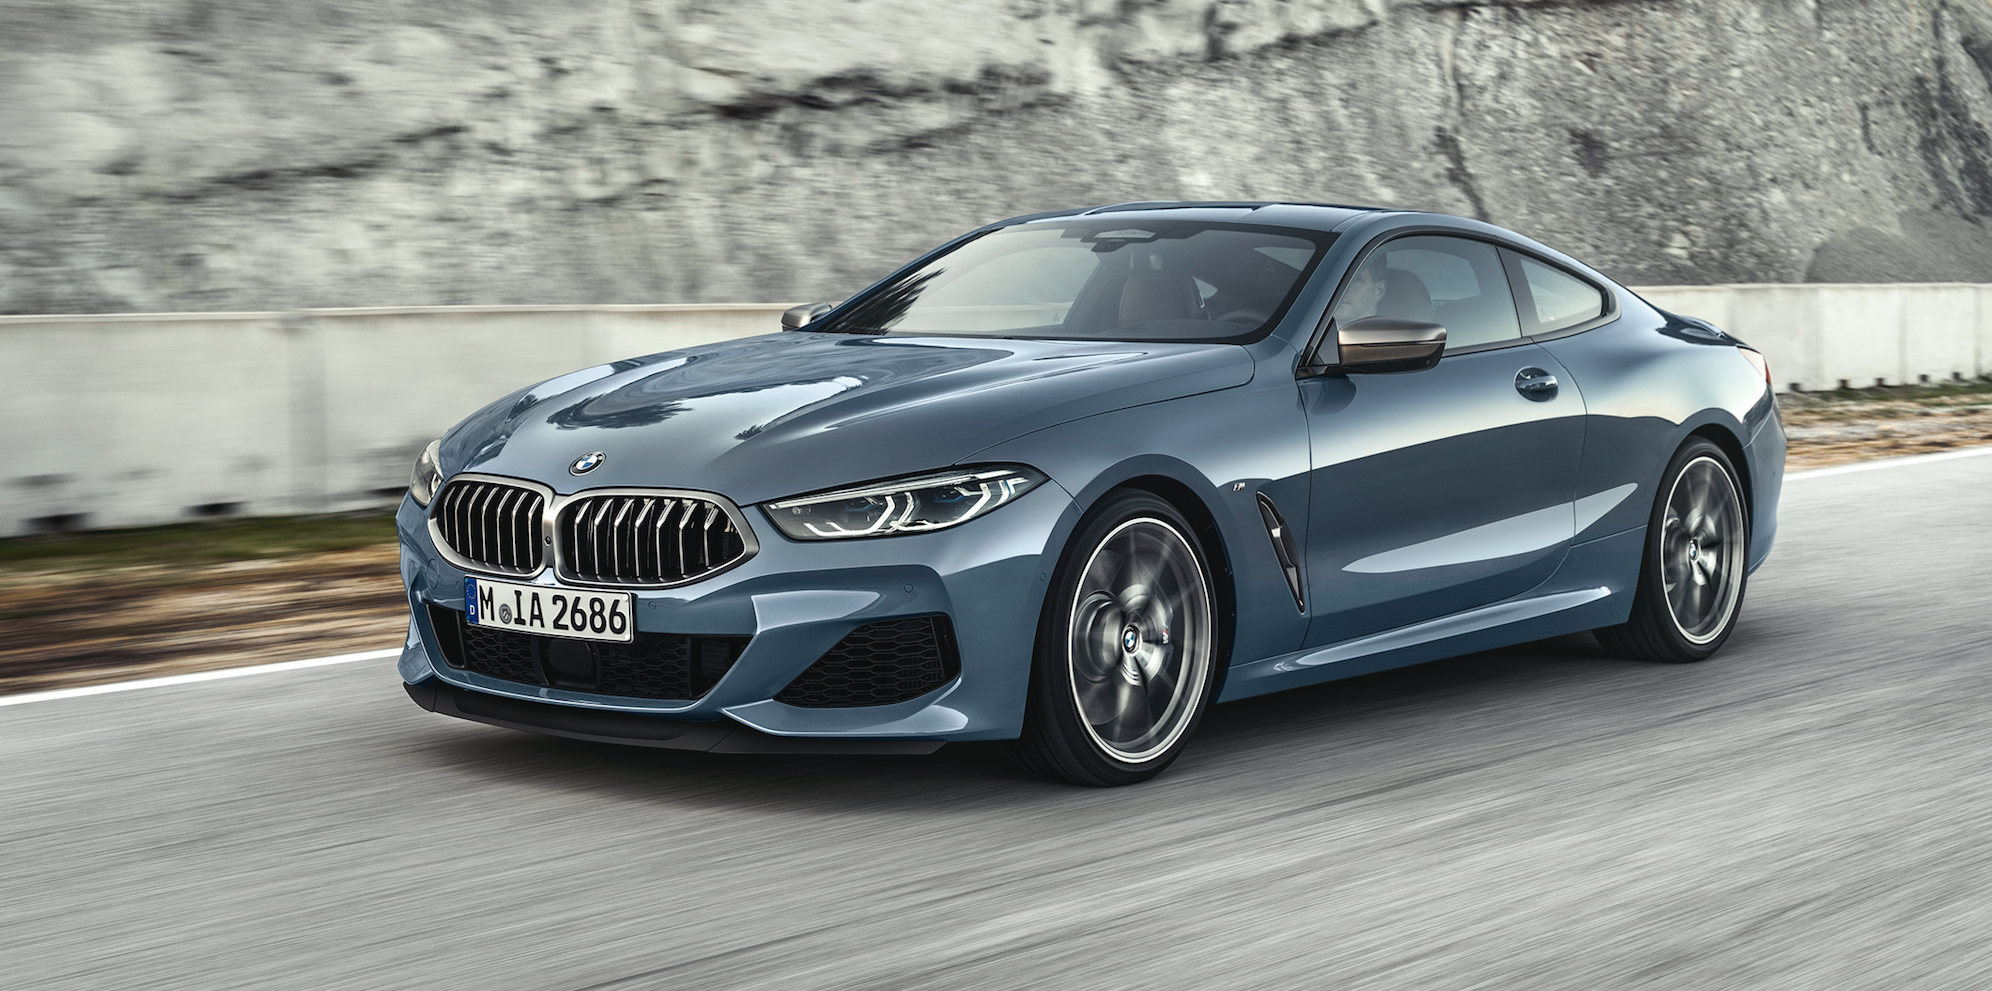 2019 BMW 8-Series Revealed - All New M850i xDrive